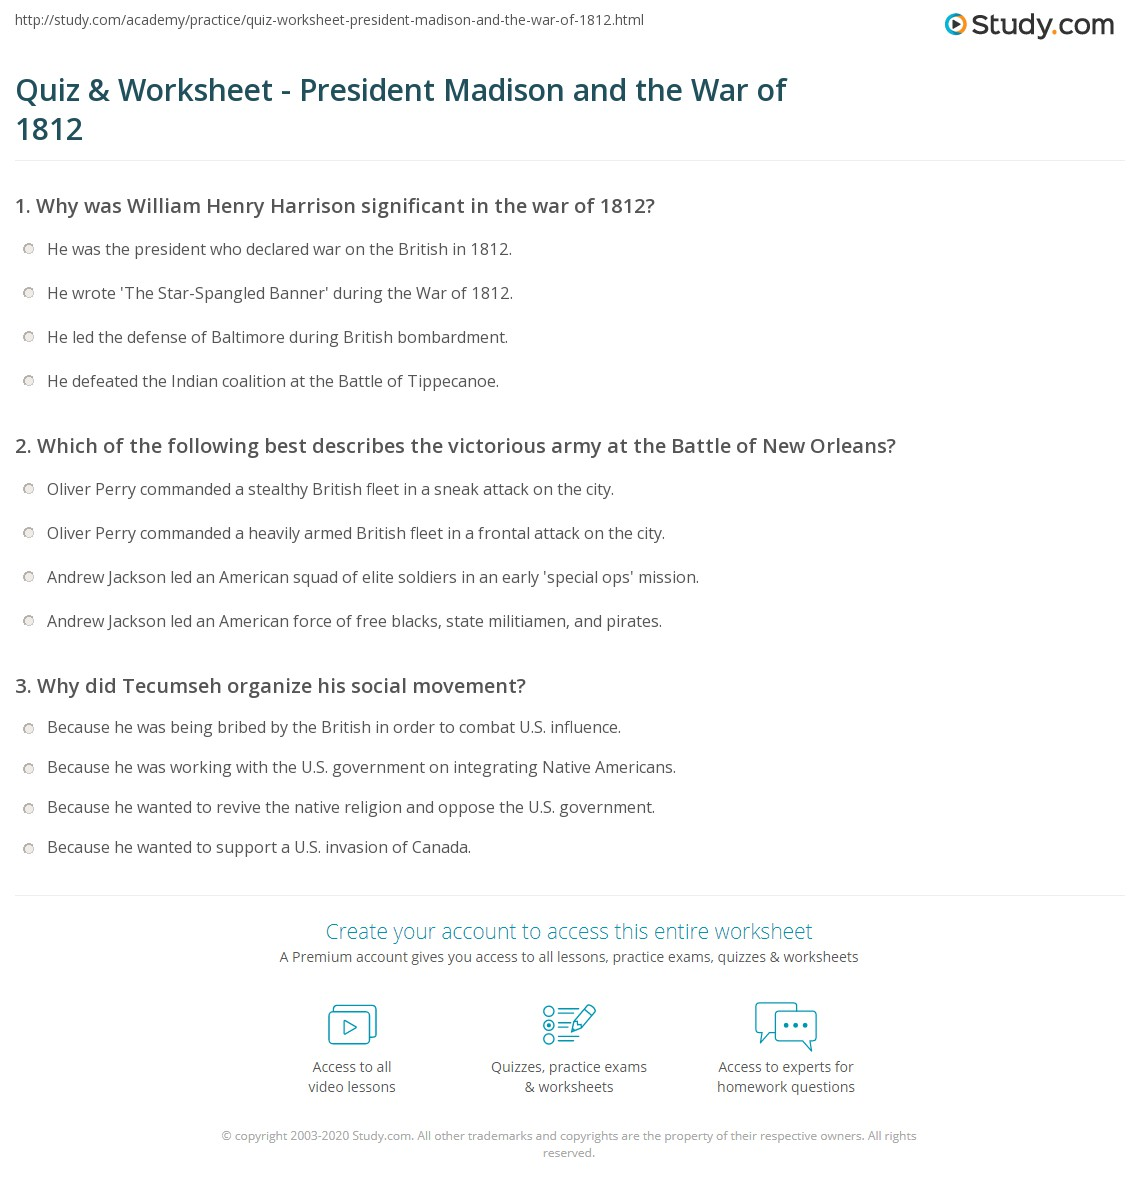 Quiz & Worksheet - President Madison and the War of 1812 | Study.com